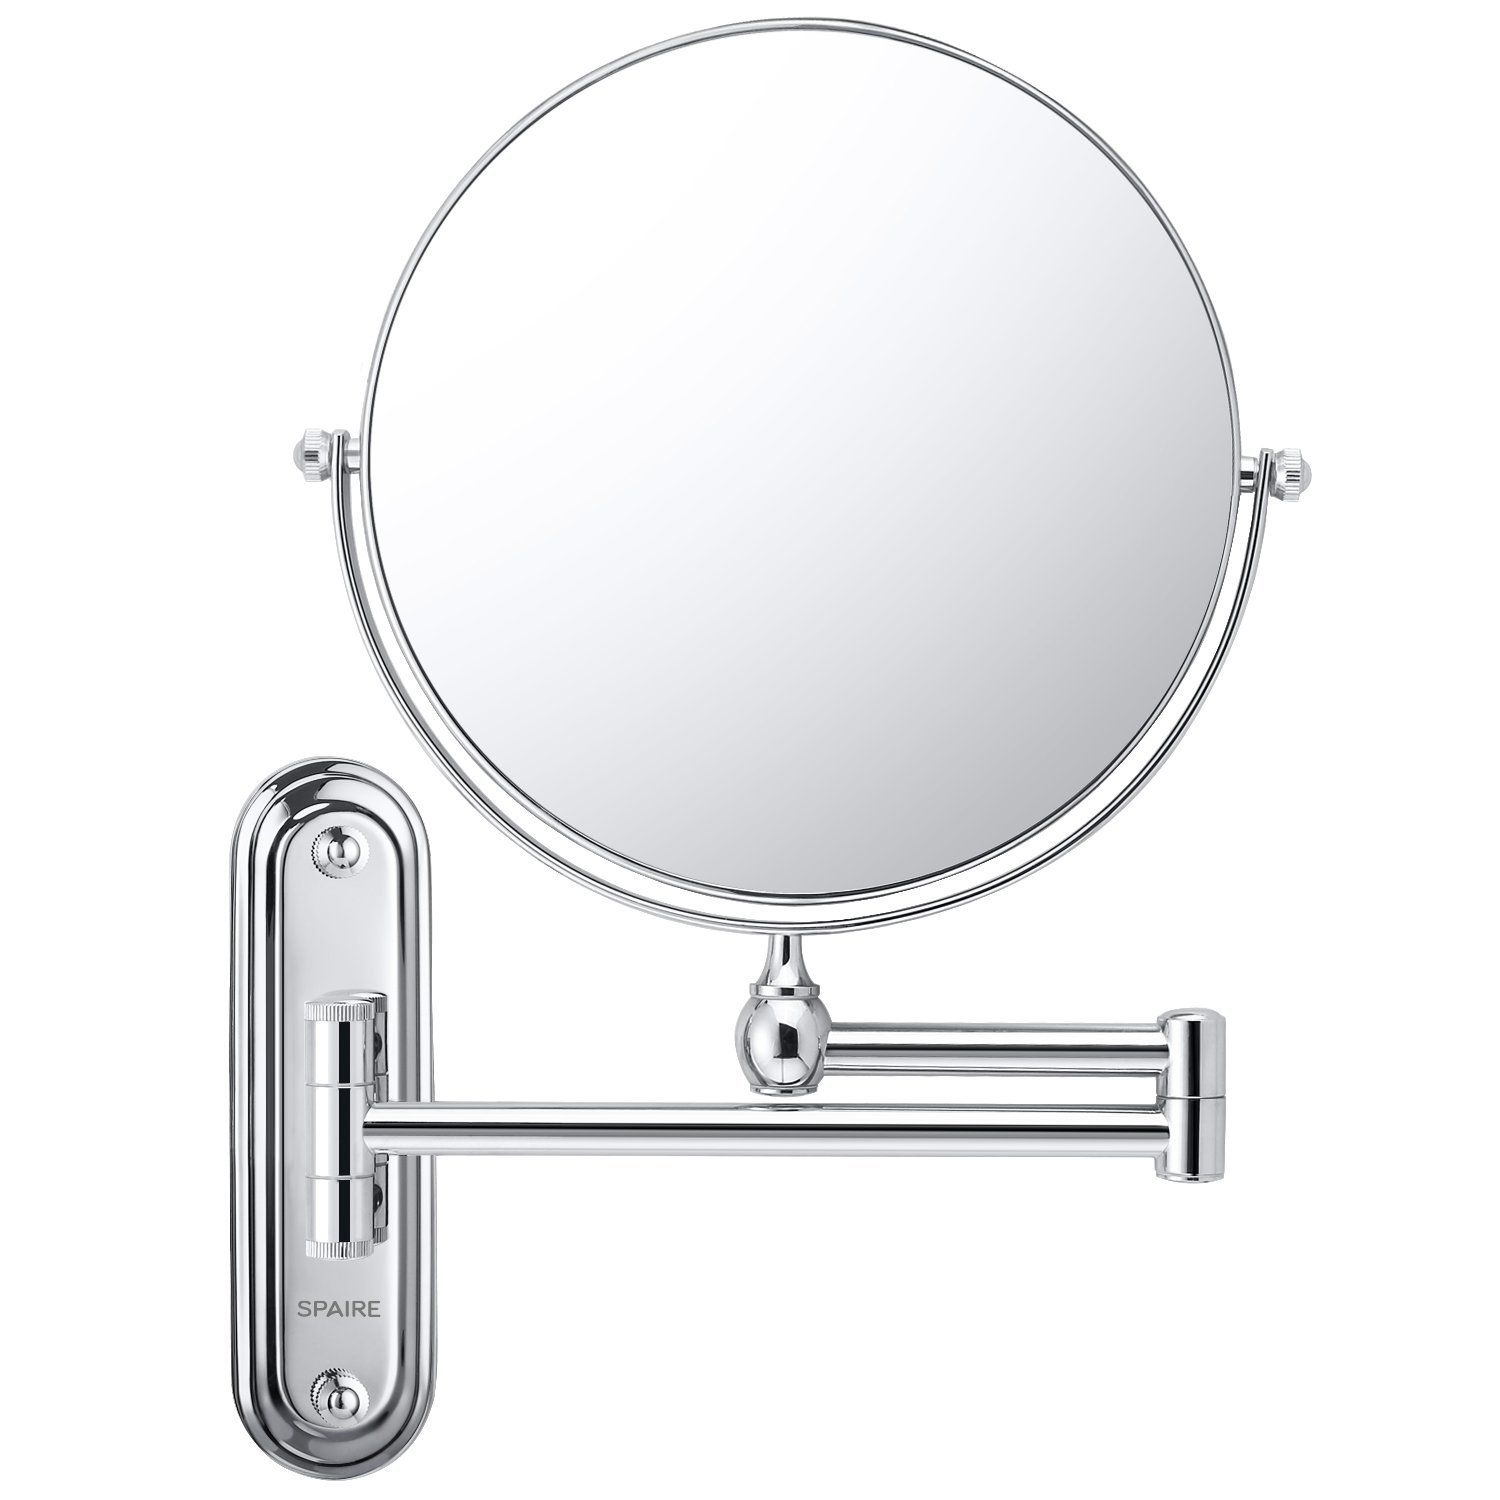 Spaire Bathroom Mirror 7x Magnification Normal Double Sided